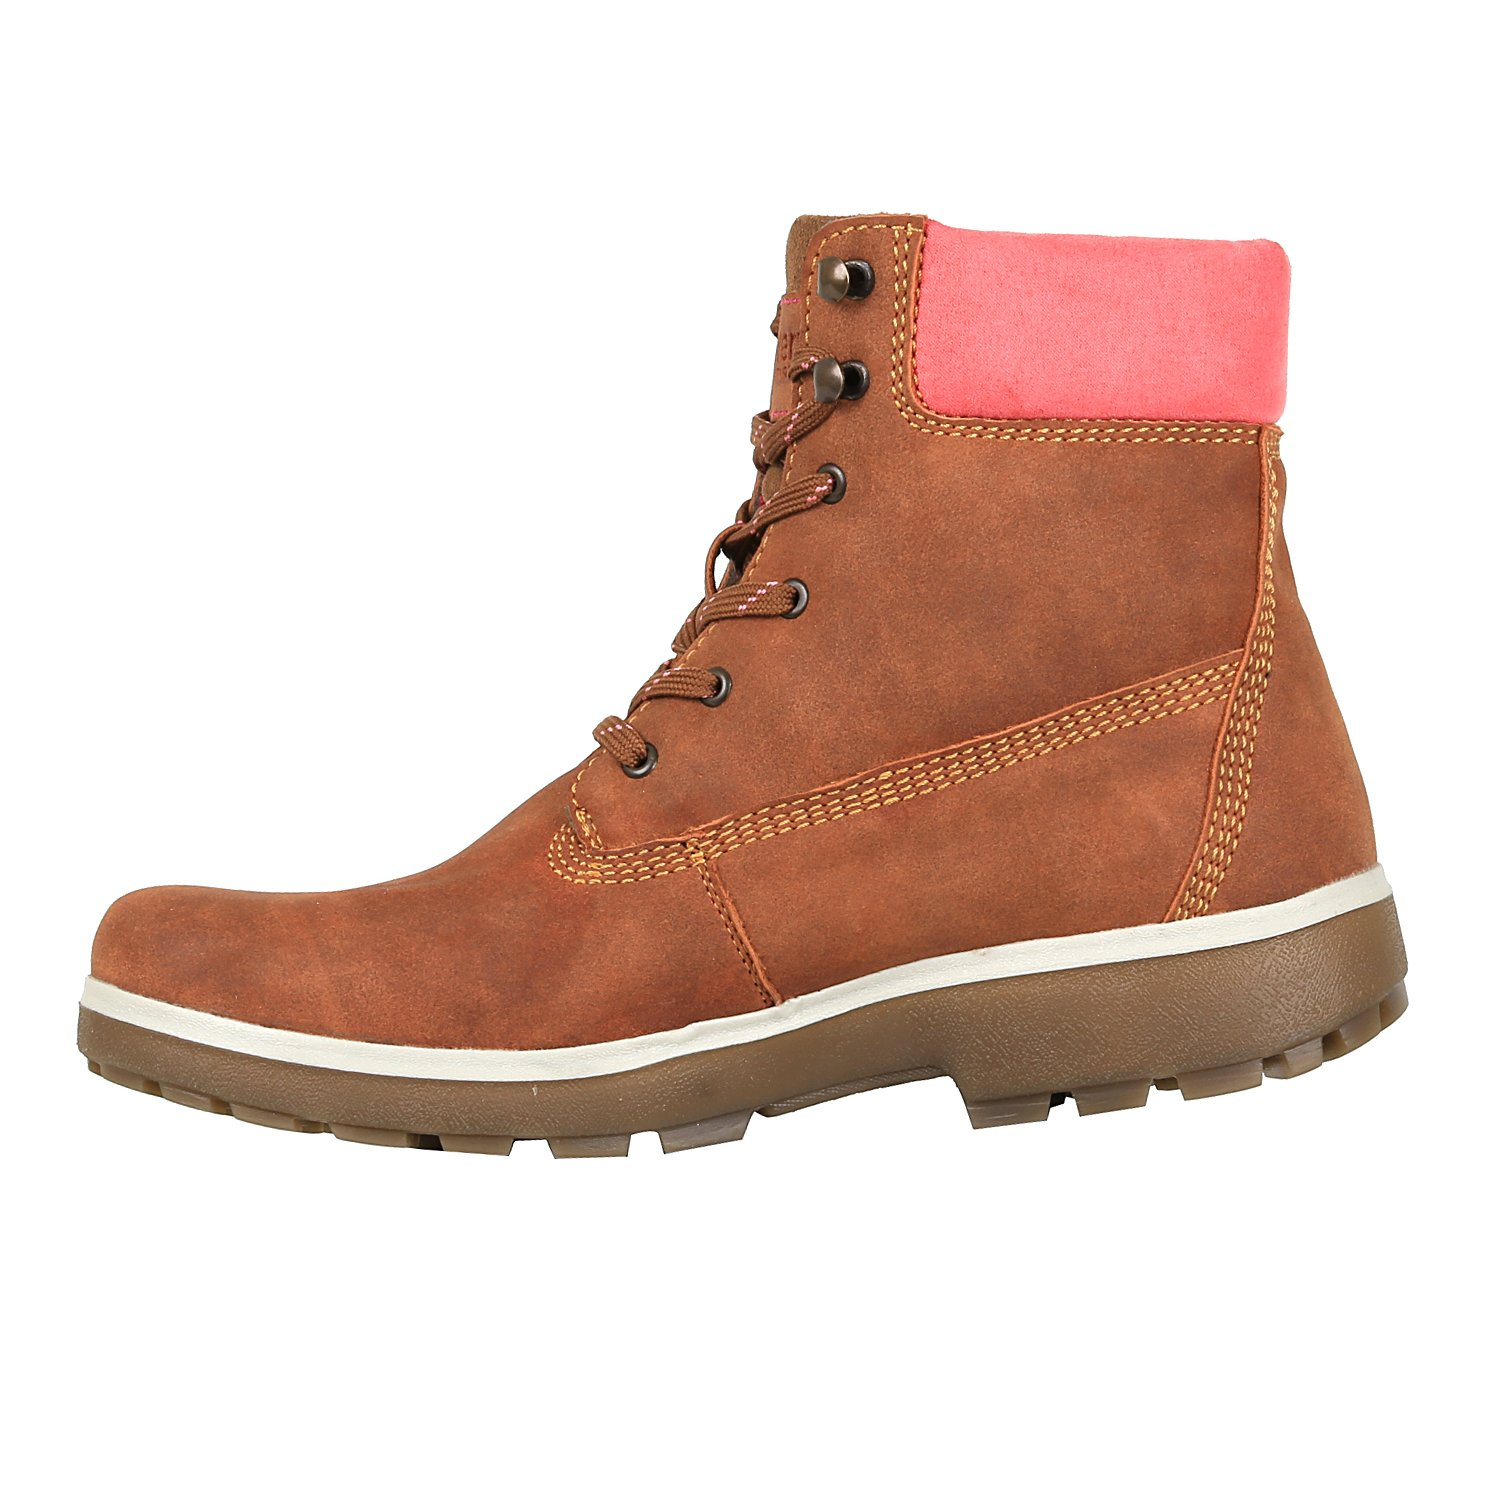 Discovery Expedition Women's Adventure High Top Lace up Hiking Boot Cinnamon Size 9.5 by Discovery Expedition (Image #2)